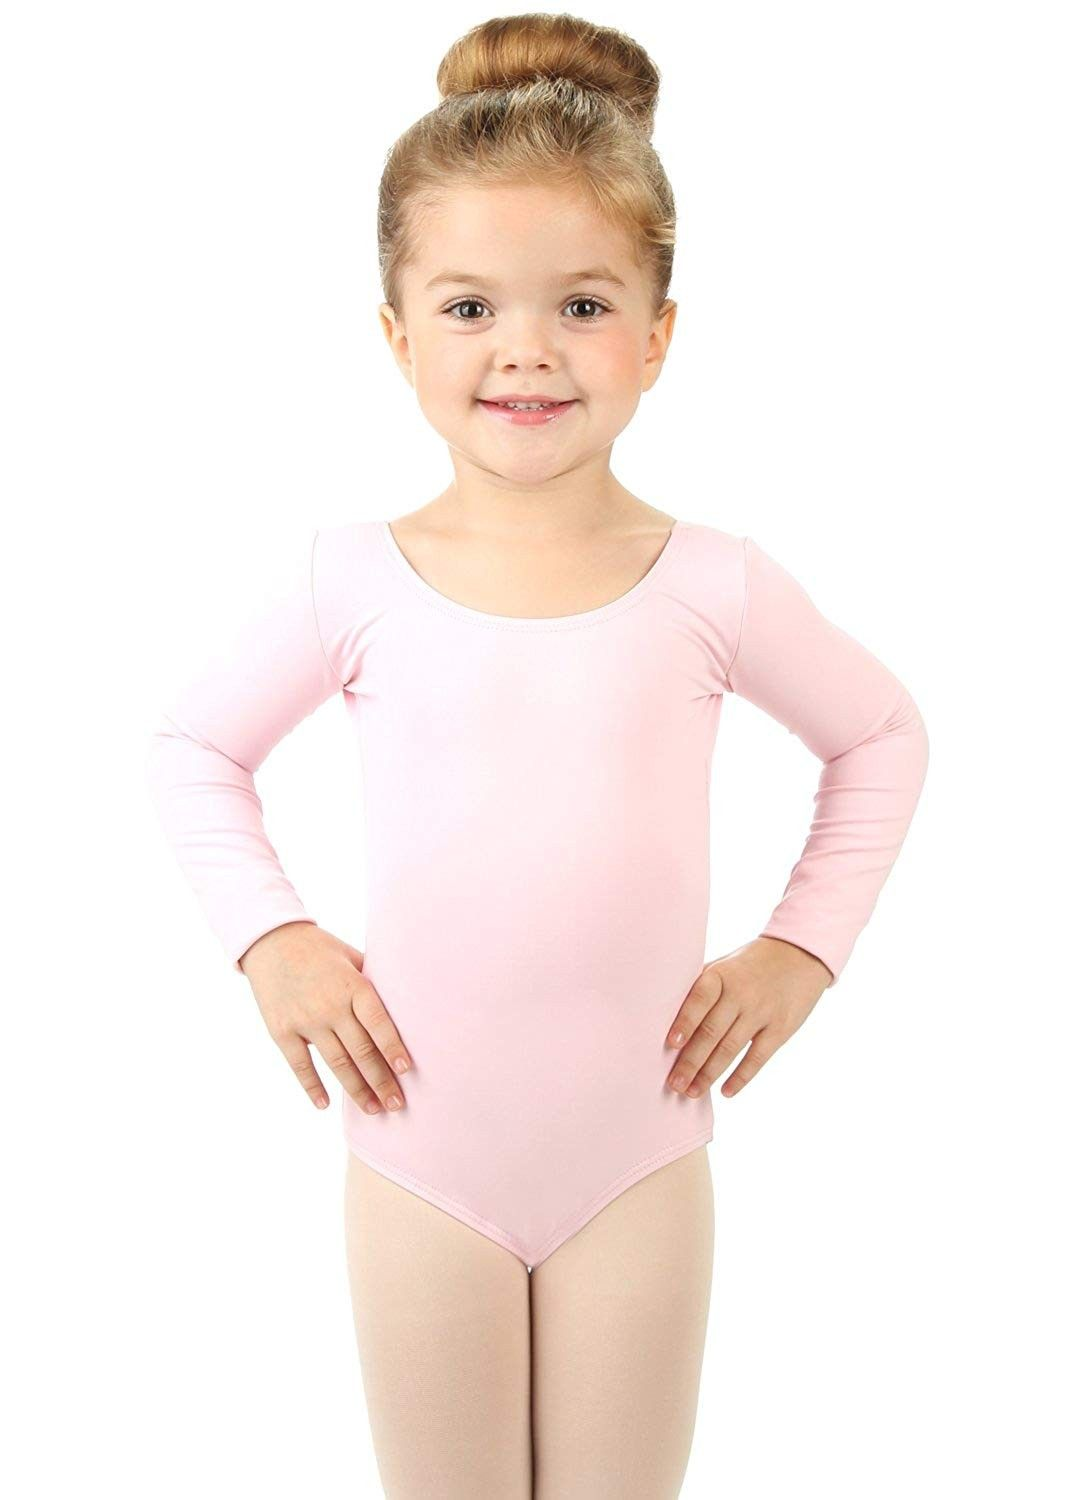 GIRLS-LADIES LEOTARDS FROM 4 YEARS  4 COLOURS